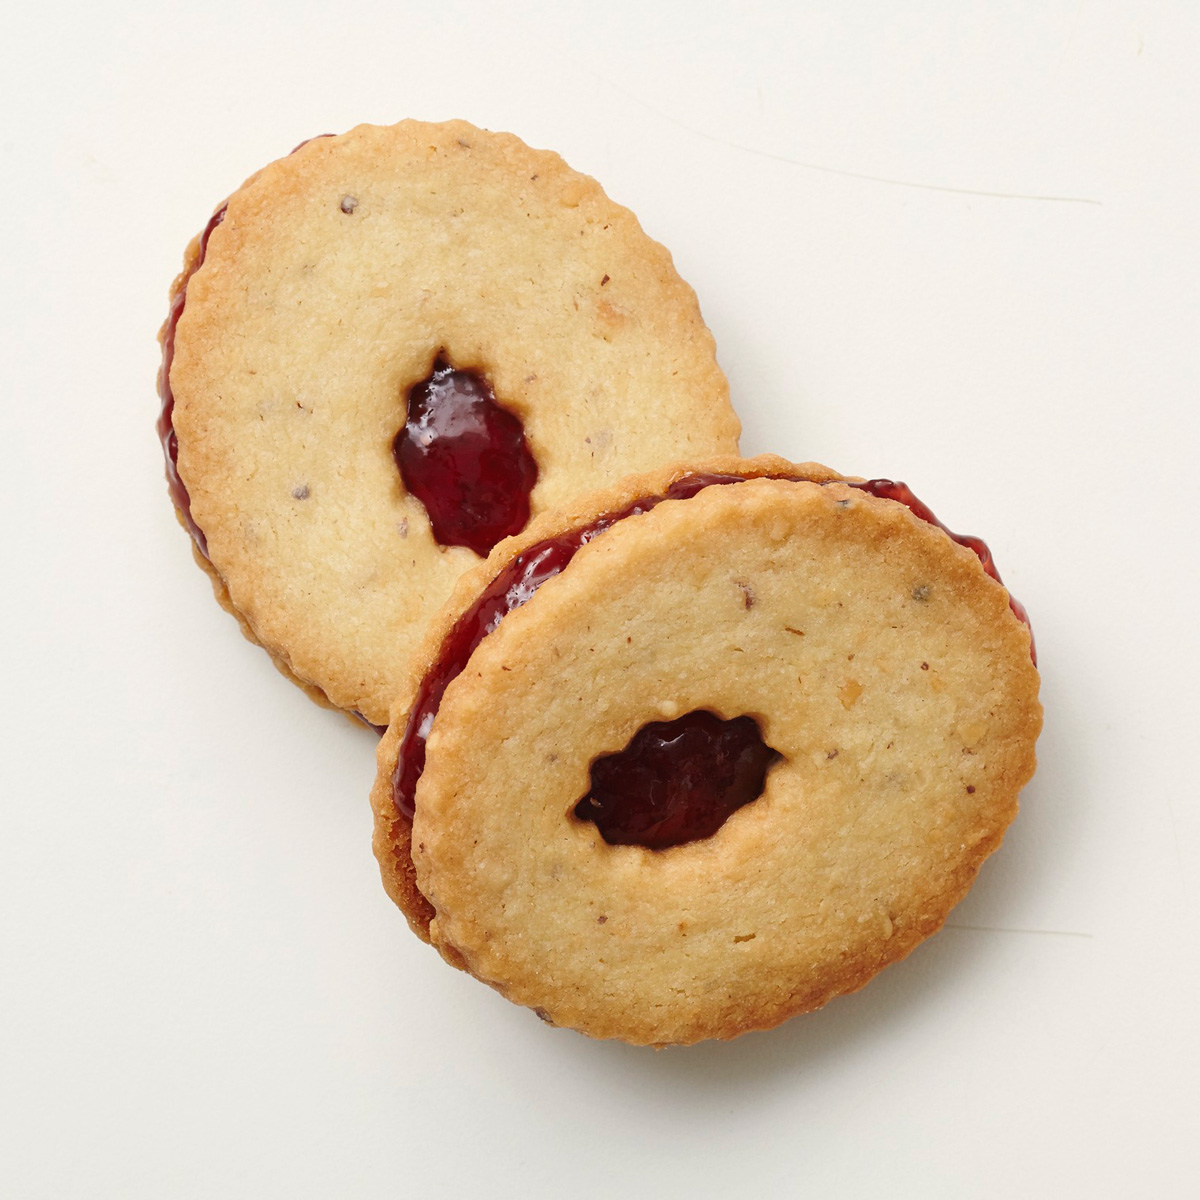 Shortbread with nuts and jam